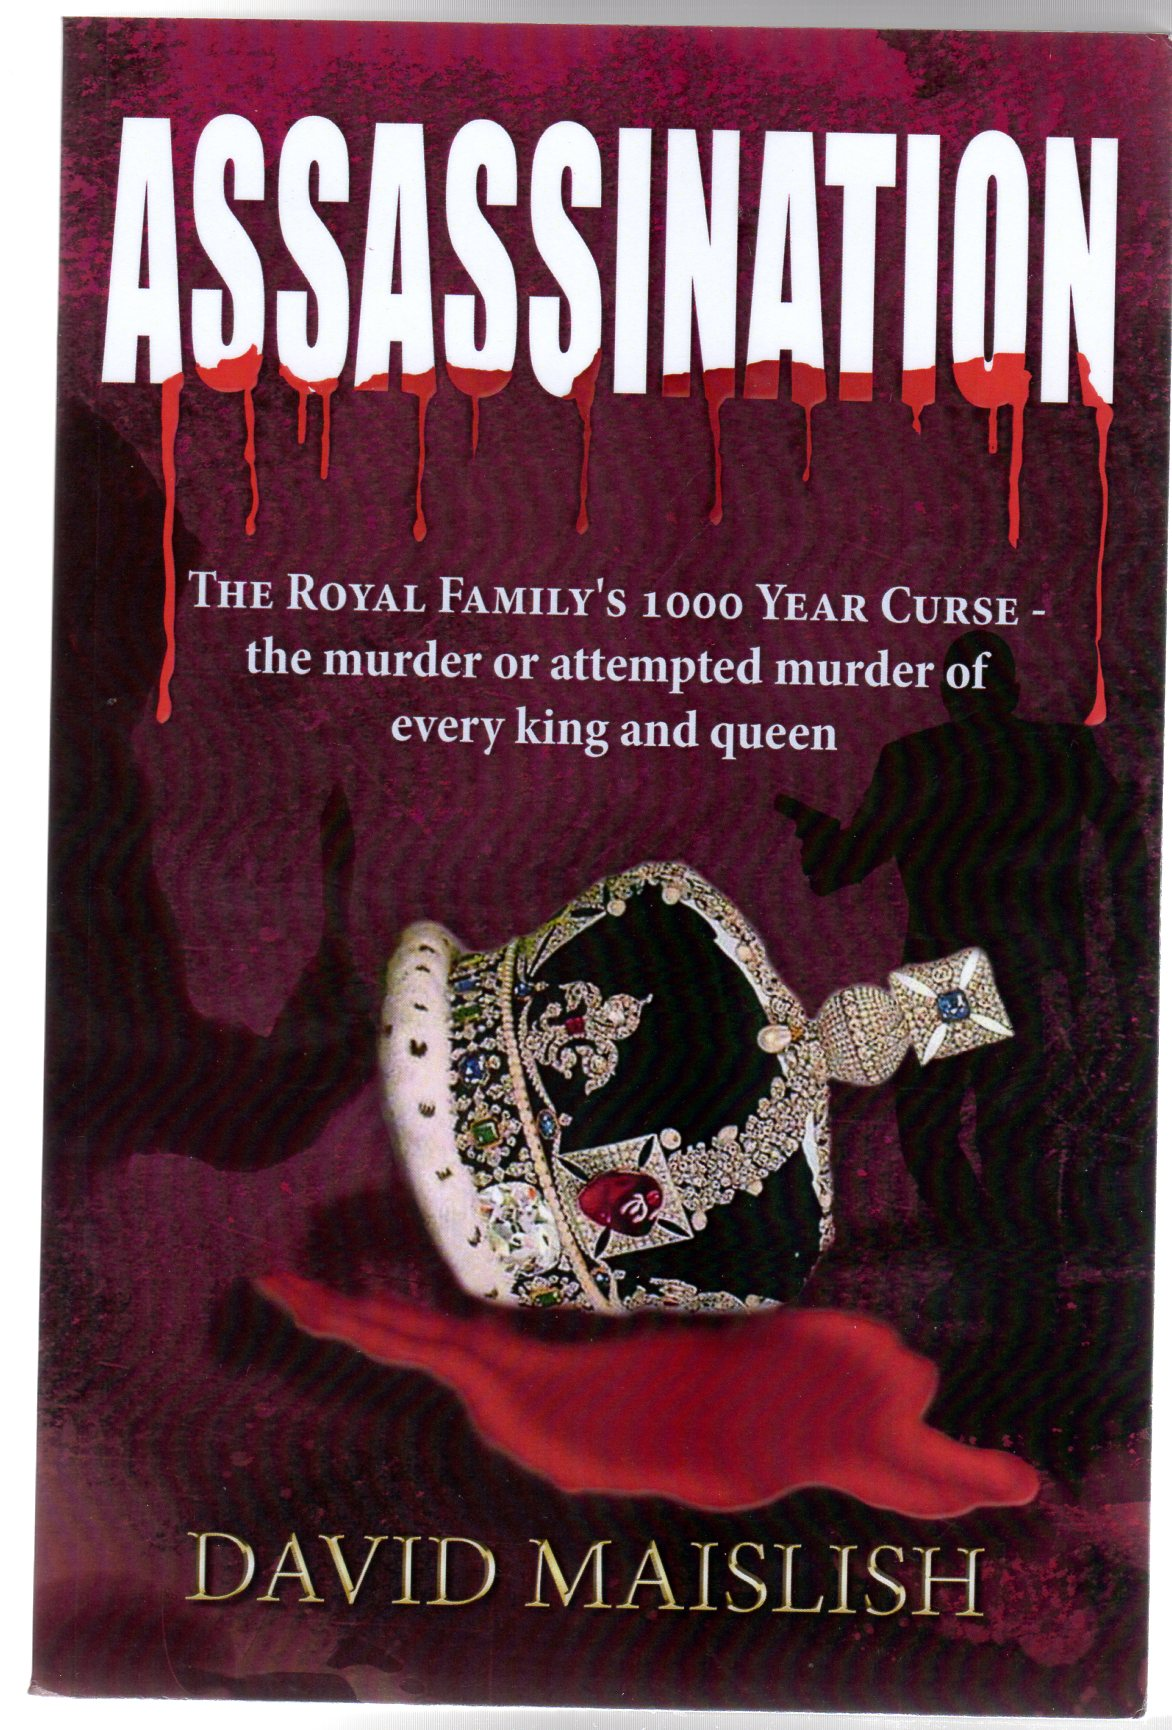 Image for Assassination - The Royal Family's 1000 Year Curse - the Murder or Attempted Murder of Every King and Queen